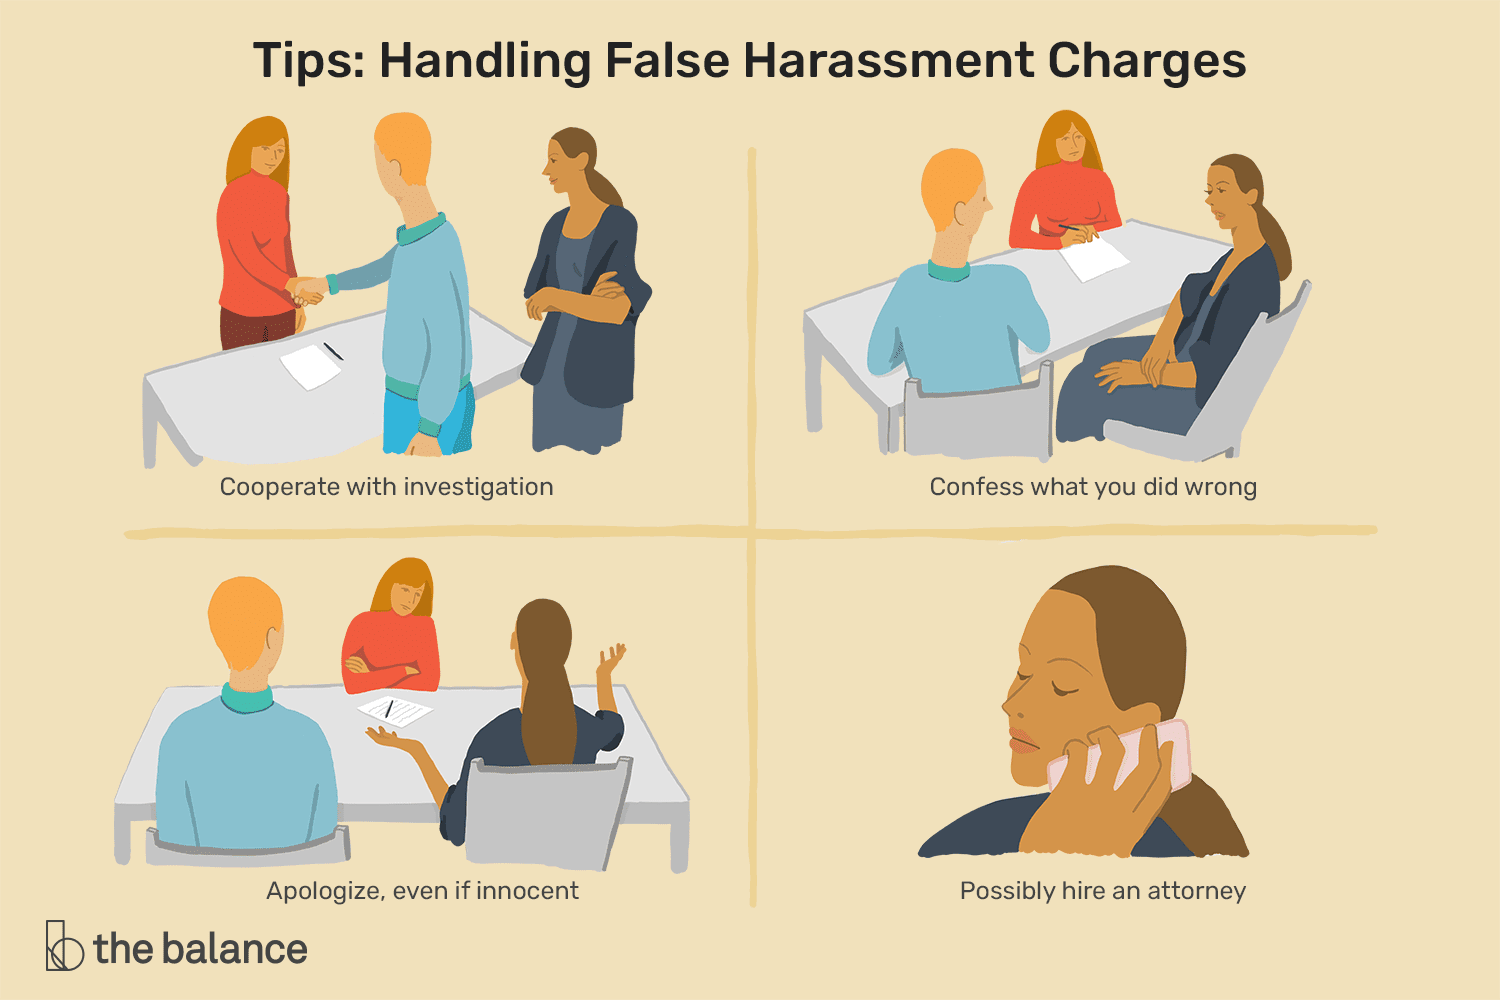 How to Defend Yourself Against False Harassment Charges